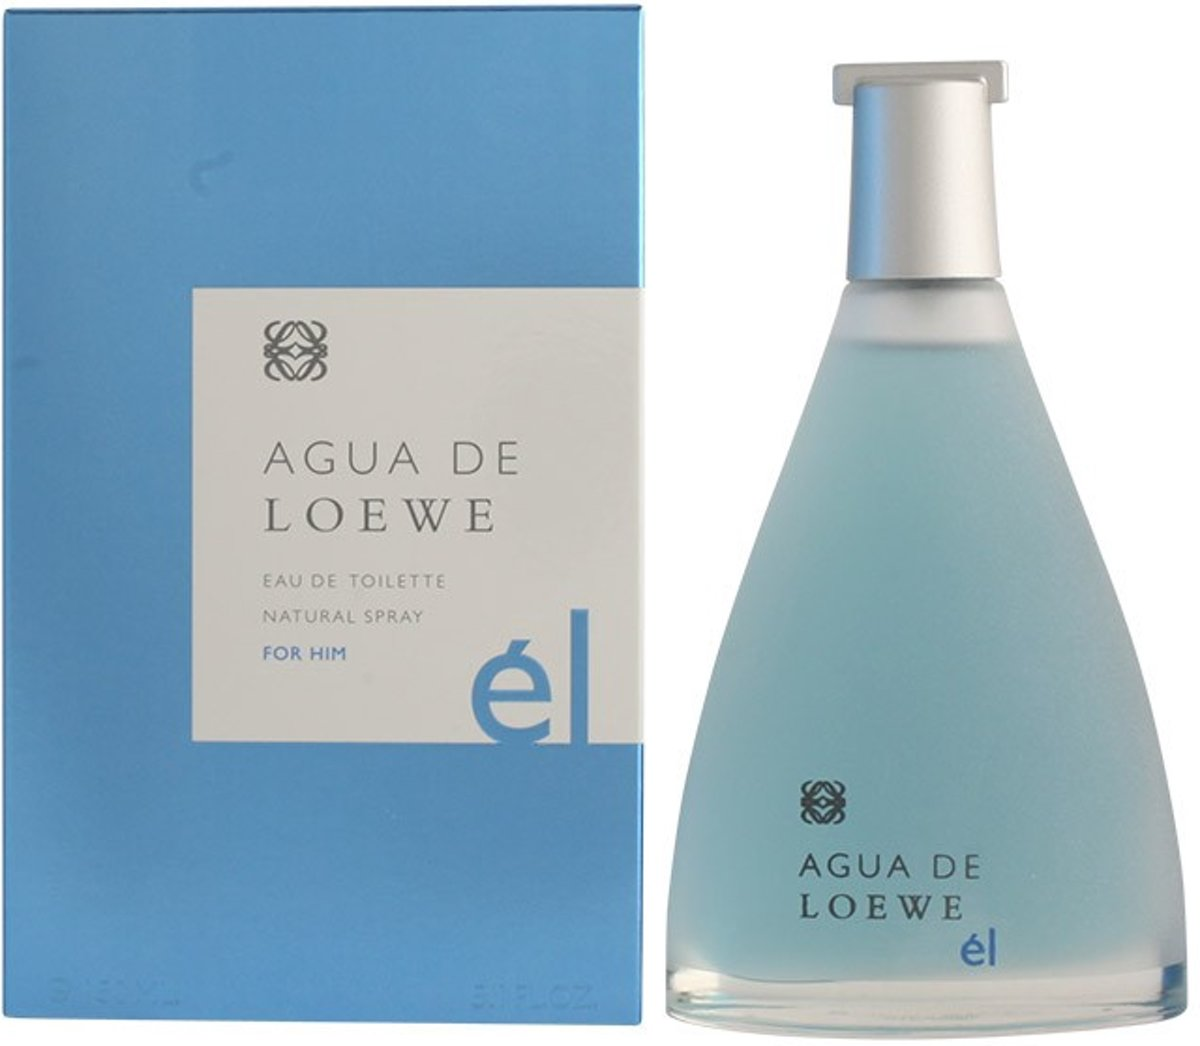 Loewe Agua De El 150 ml - Eau De Toilette Spray Men